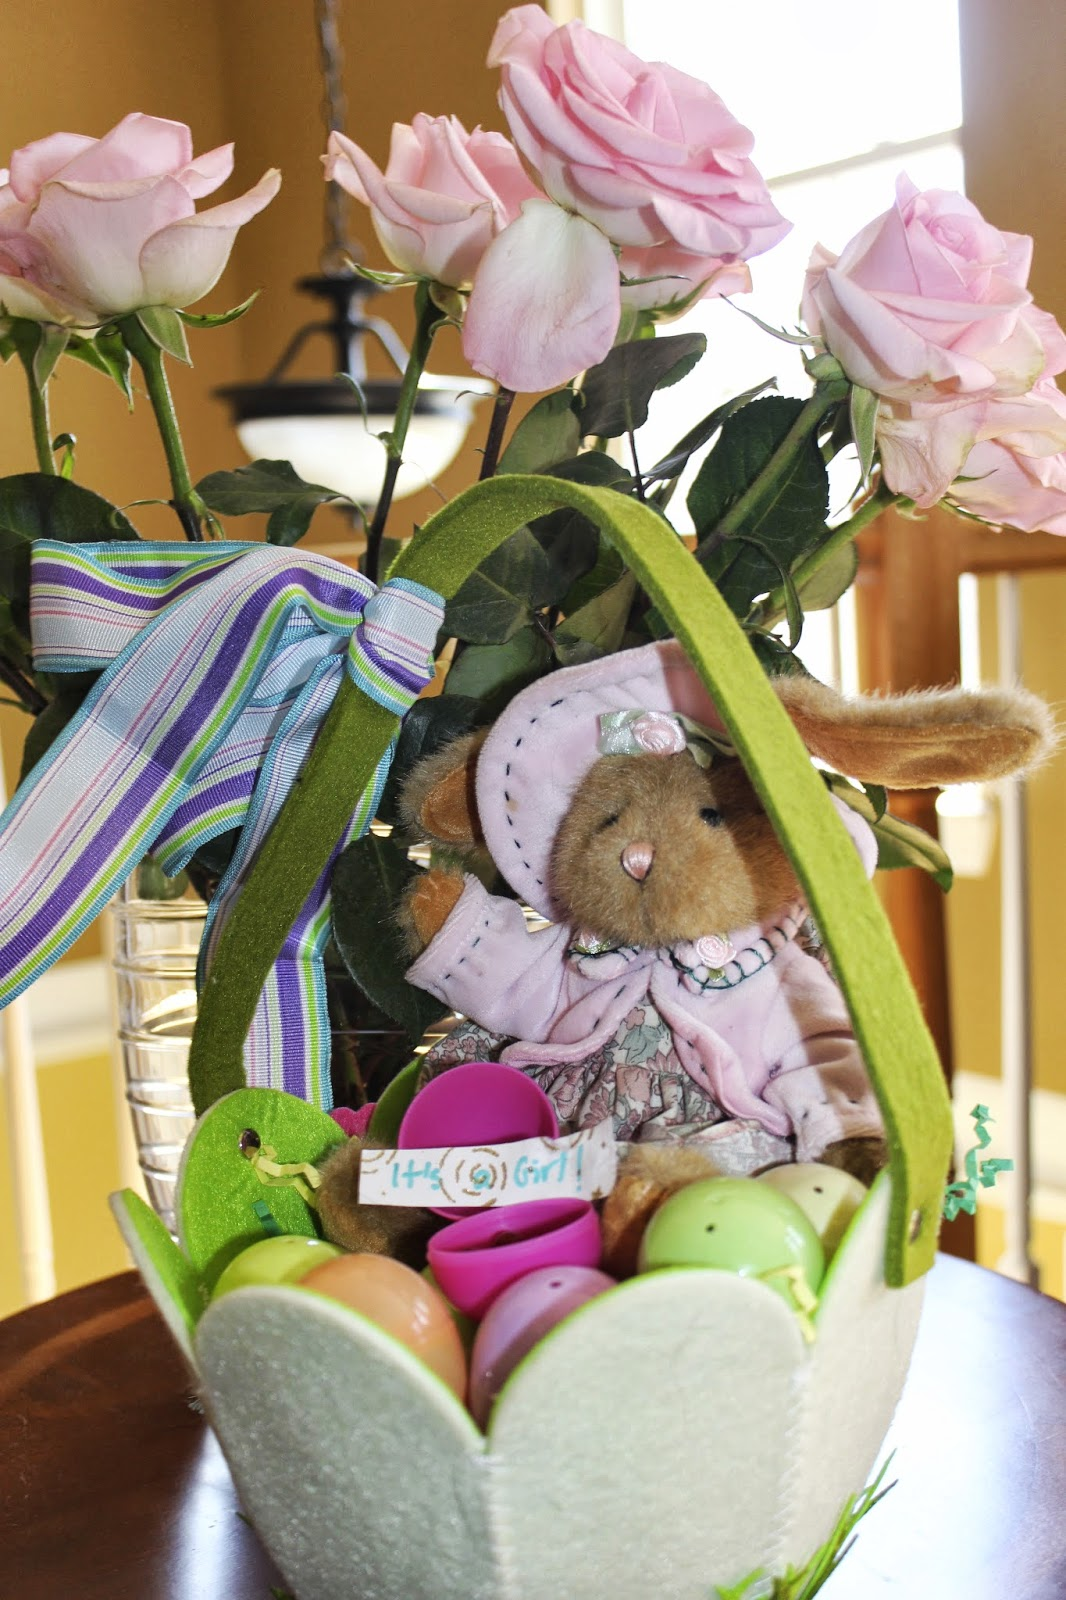 Costco Easter Baskets: Bliss In Imperfection: Easter 2013 And An Easter Basket